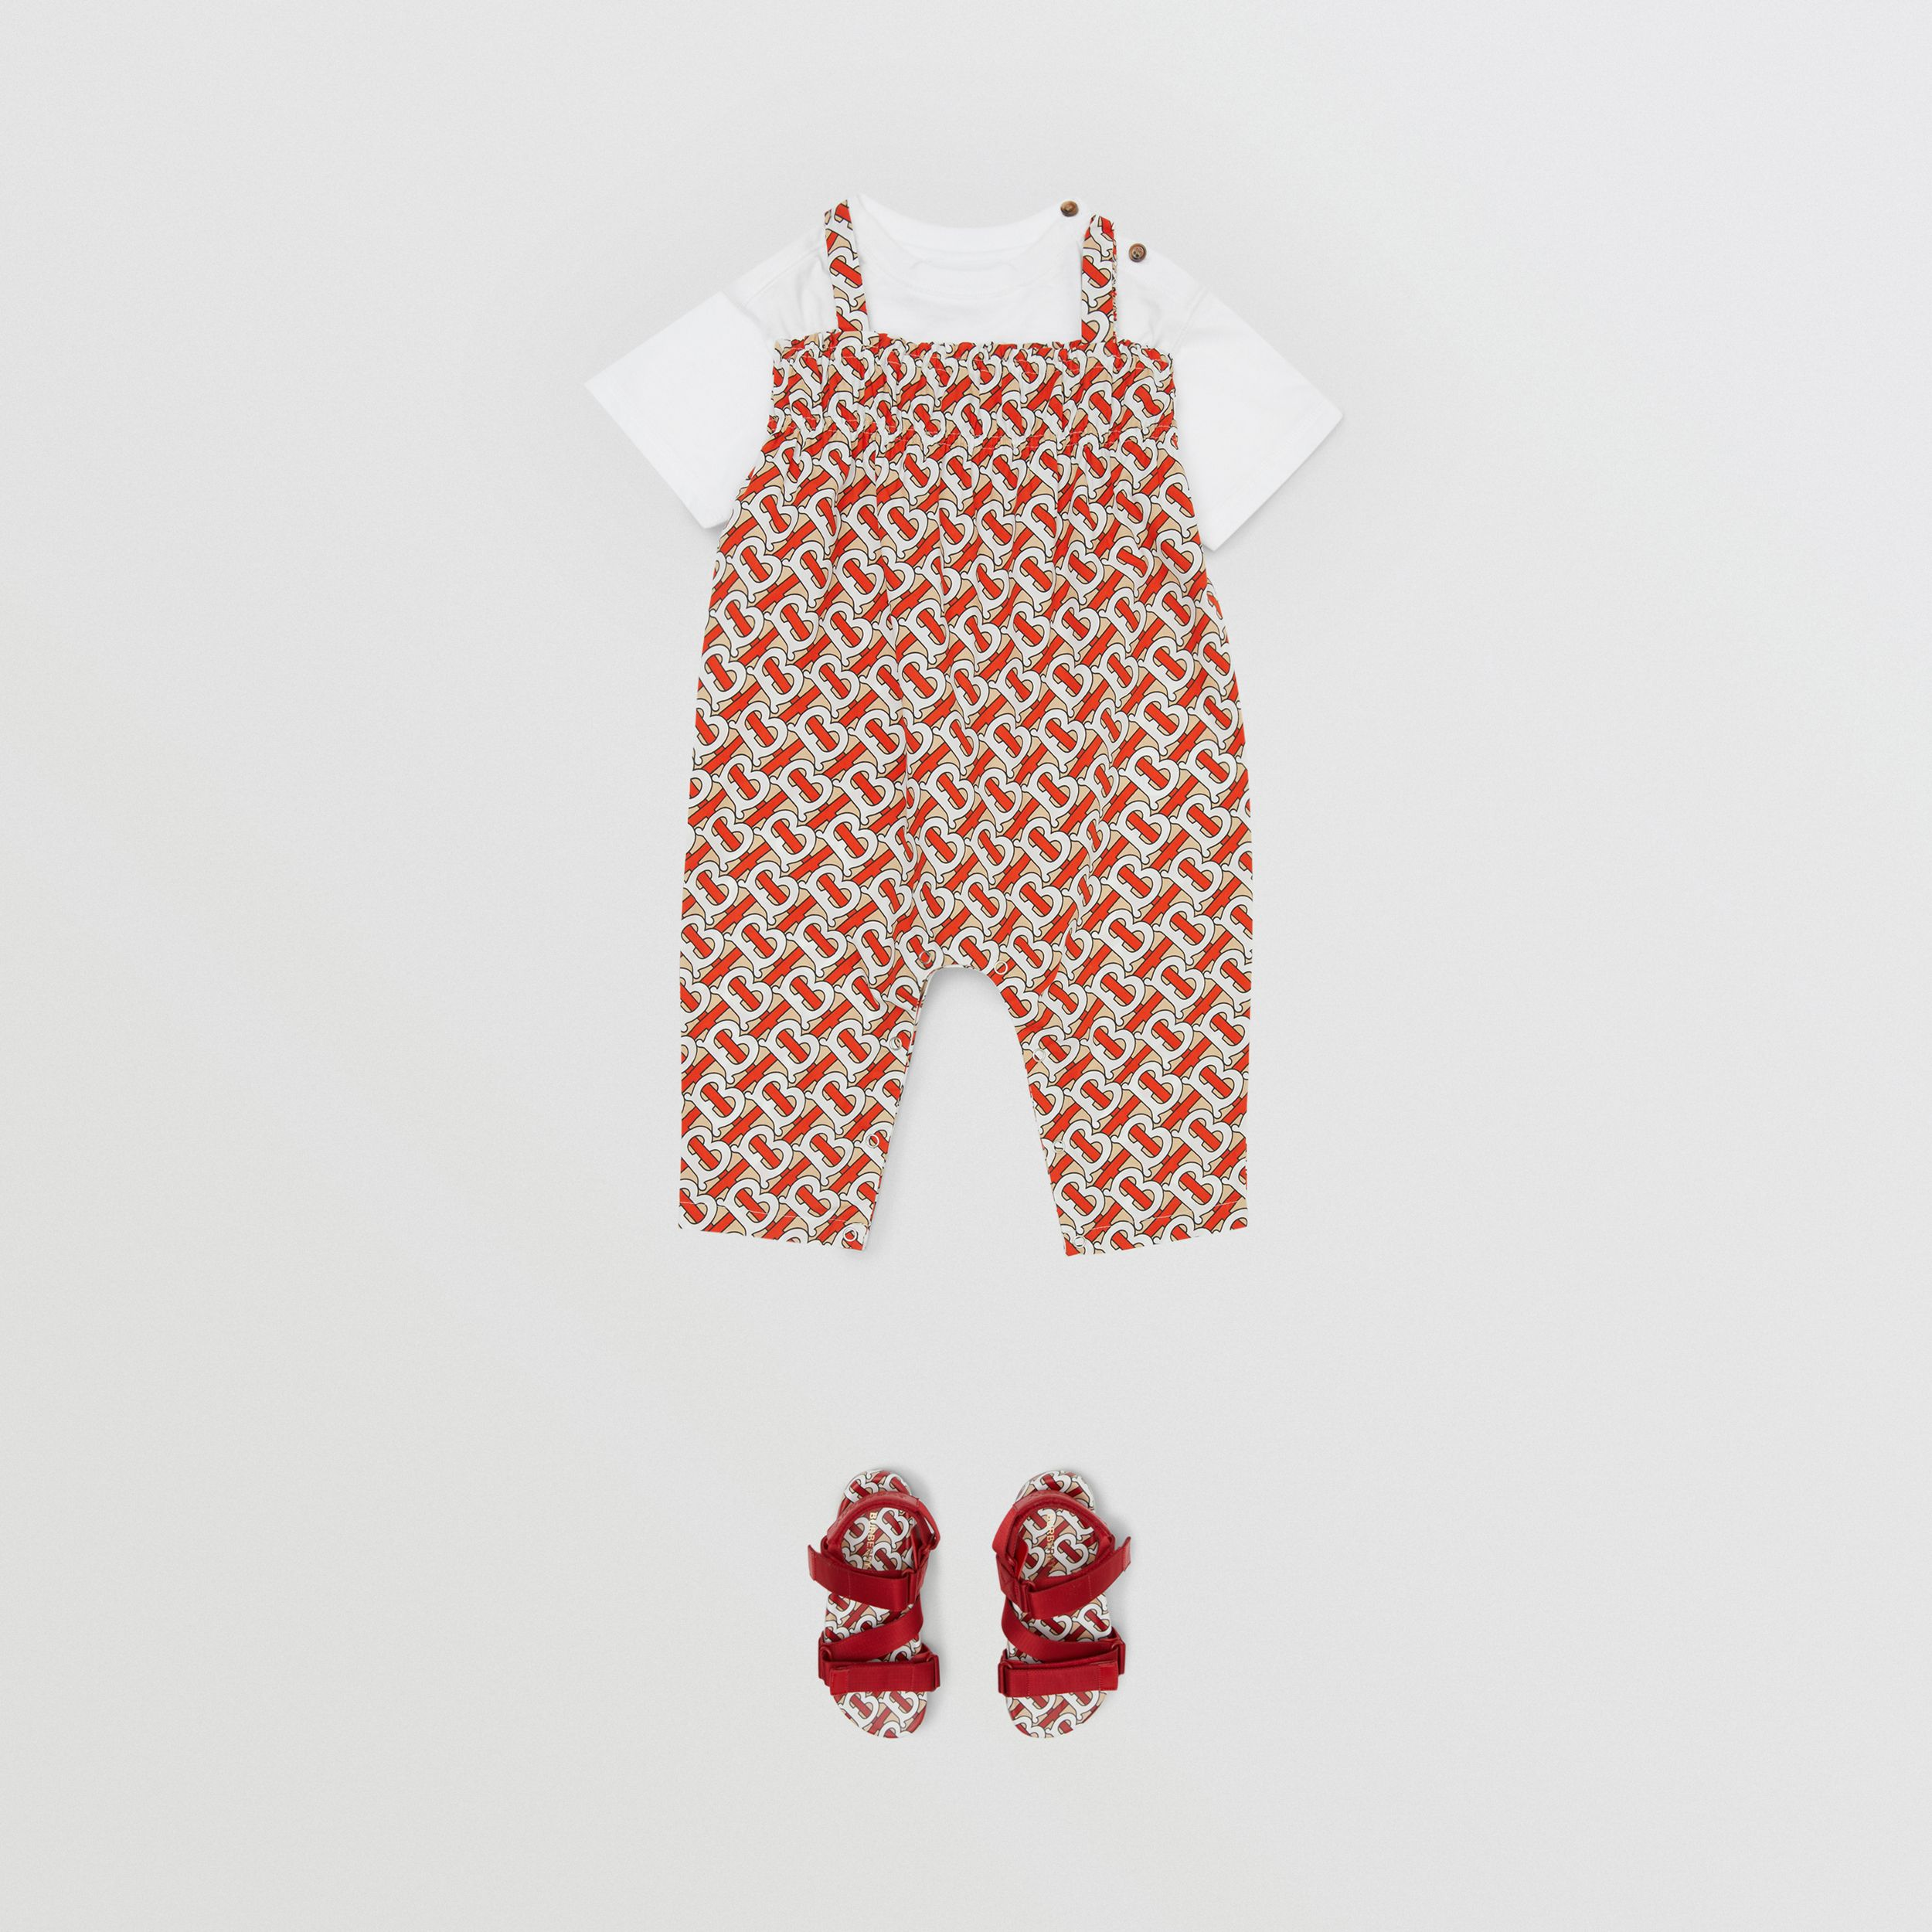 Smocked Monogram Print Cotton Poplin Jumpsuit in Vermilion Red - Children | Burberry - 3